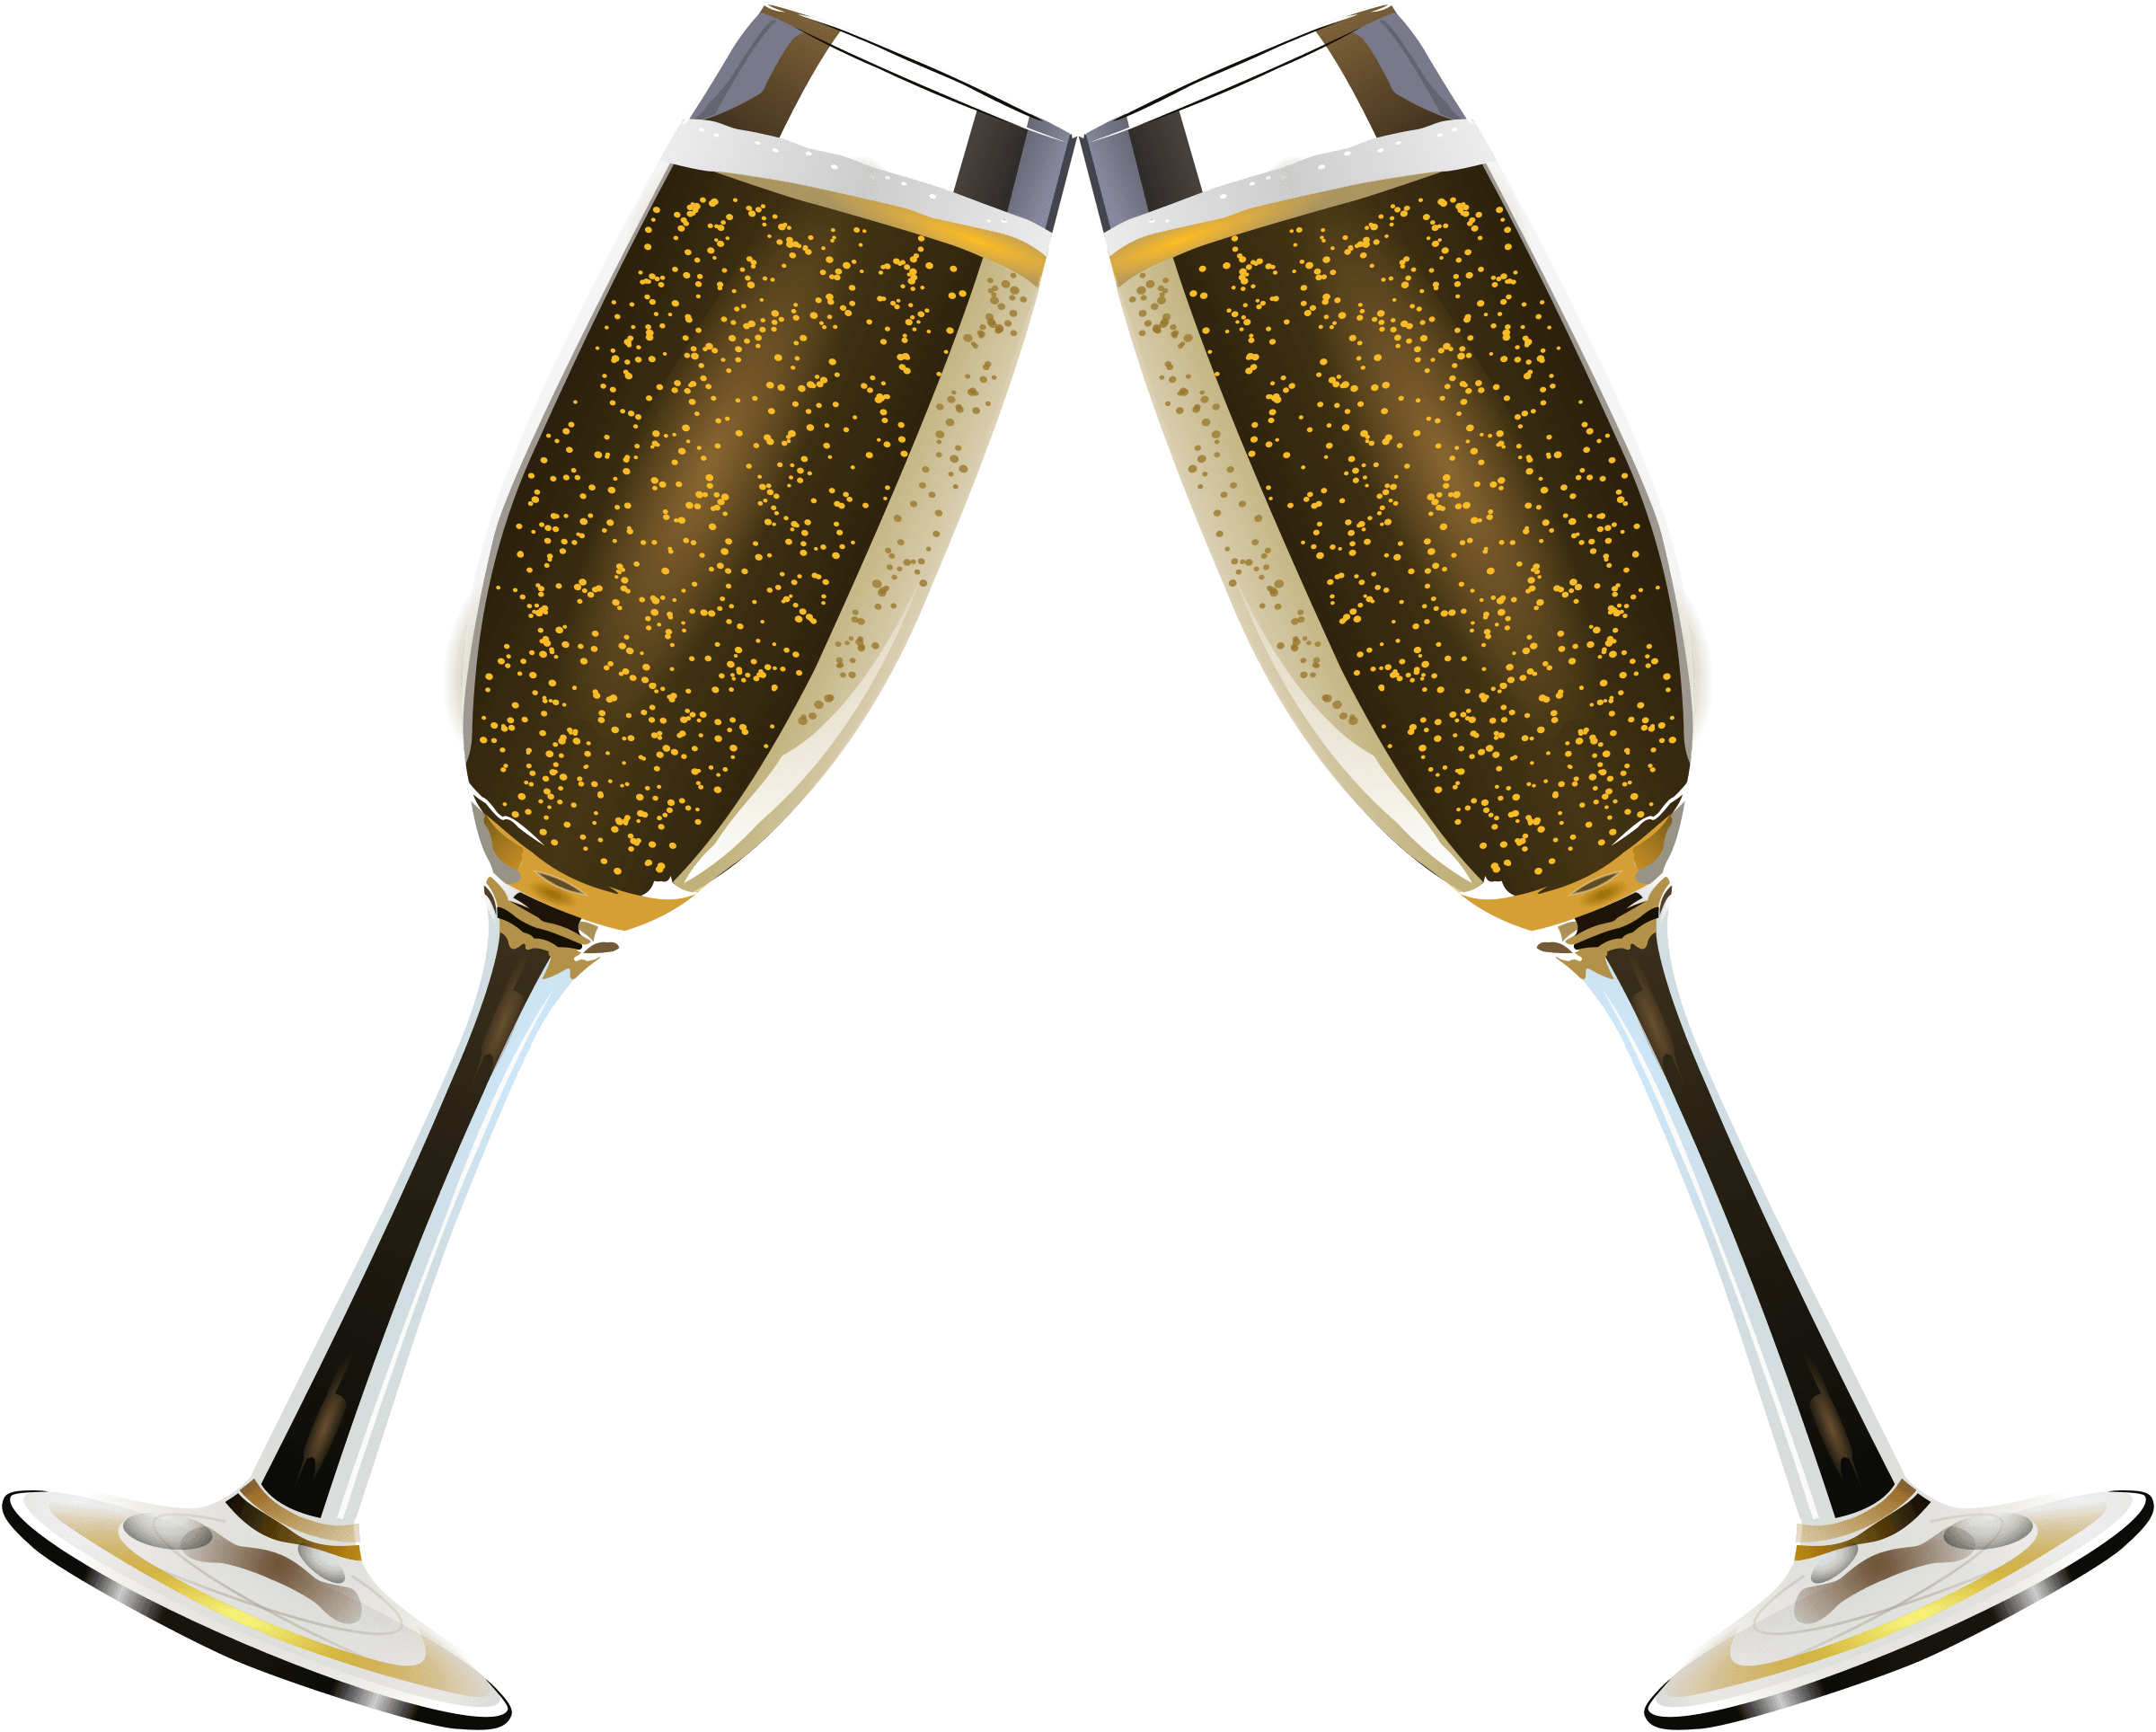 Glasses clipart glass cup. Of champagne bubbles transparent